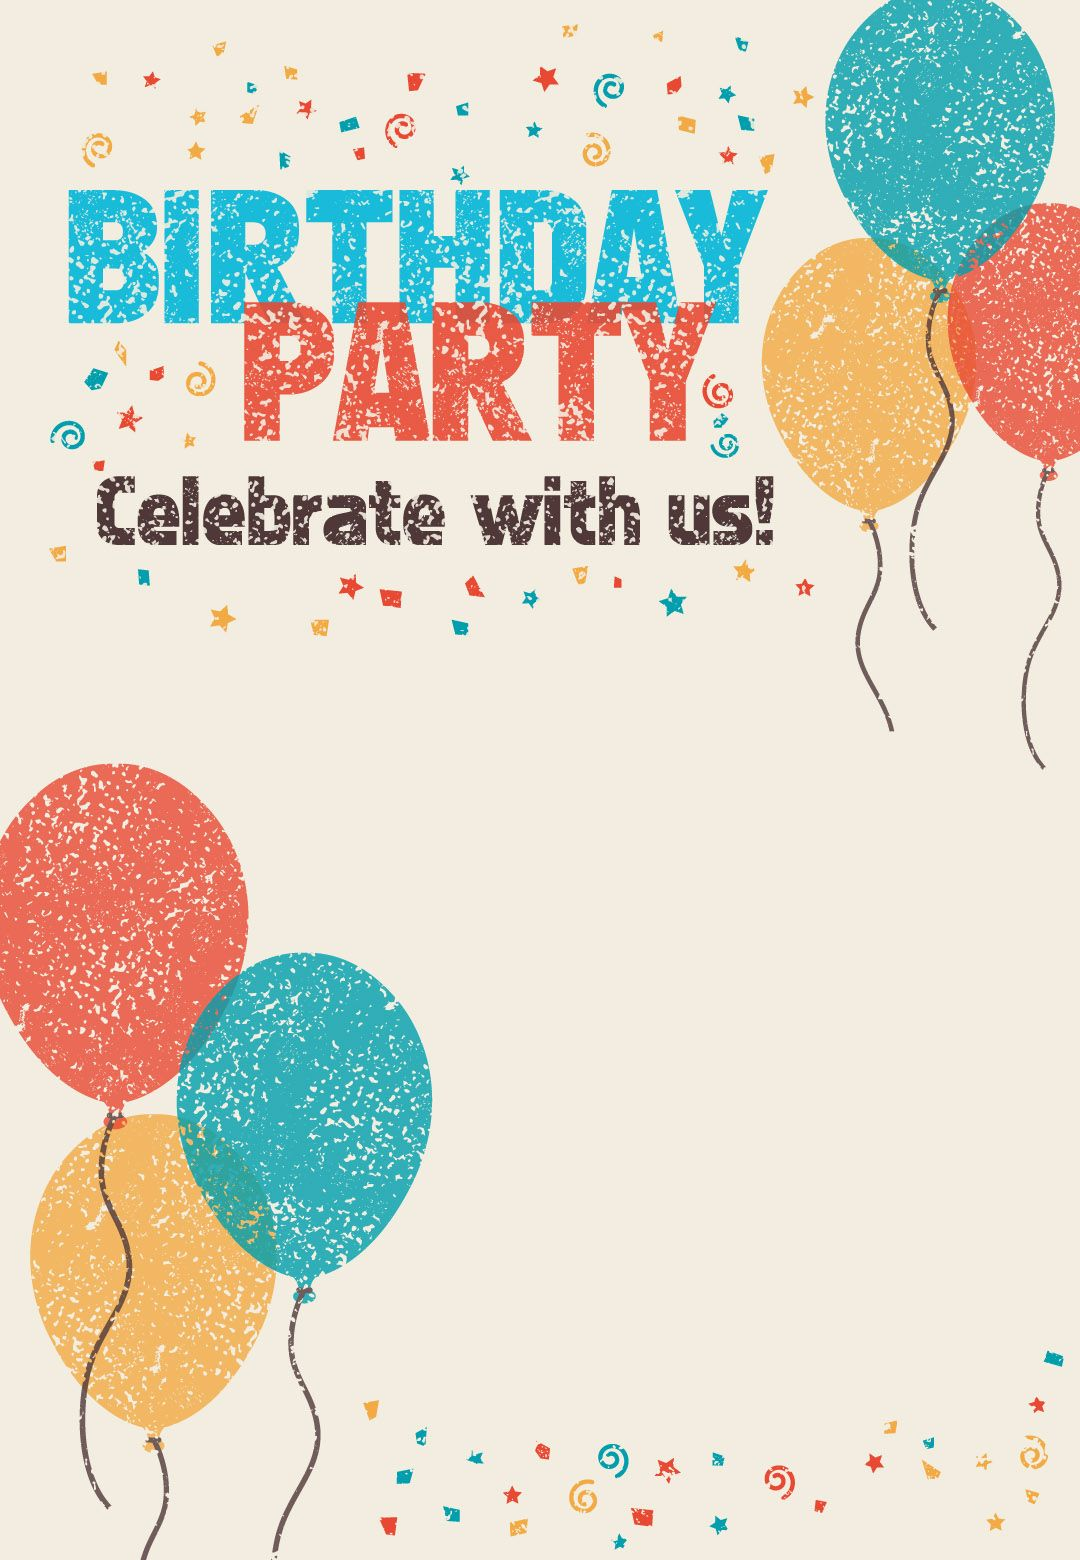 Free Printable Celebrate With Us Invitation Great Site For - Hallmark party invitations templates